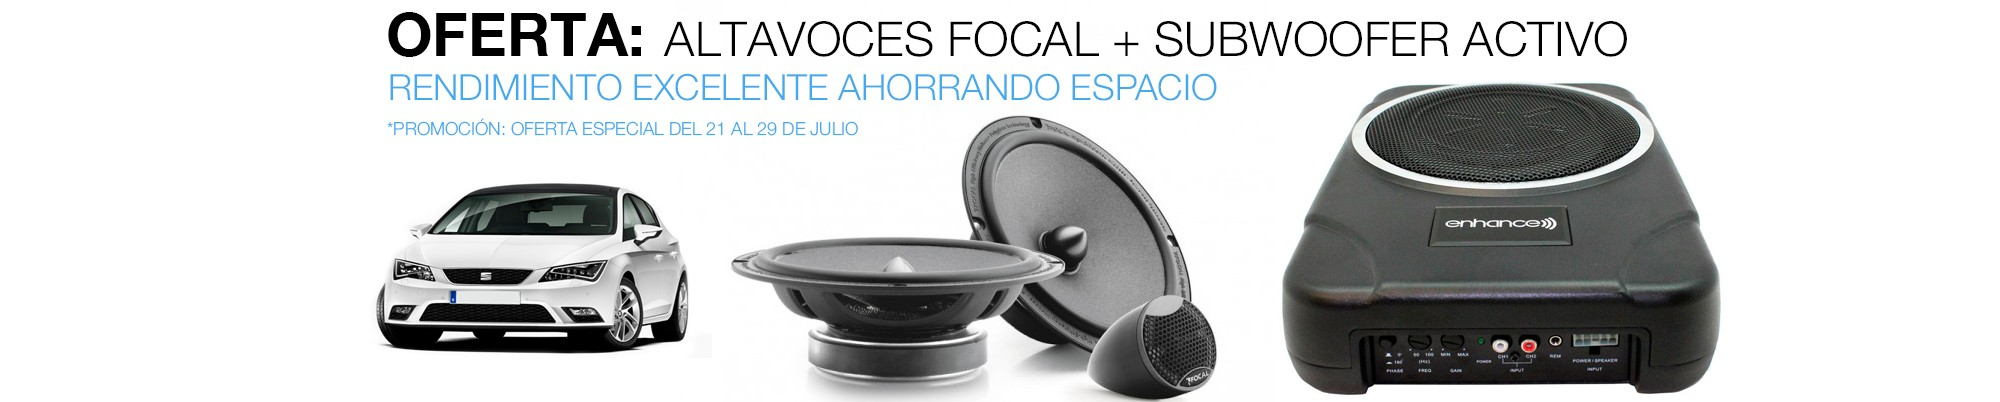 Pack altavoces Focal y subwoofer activo